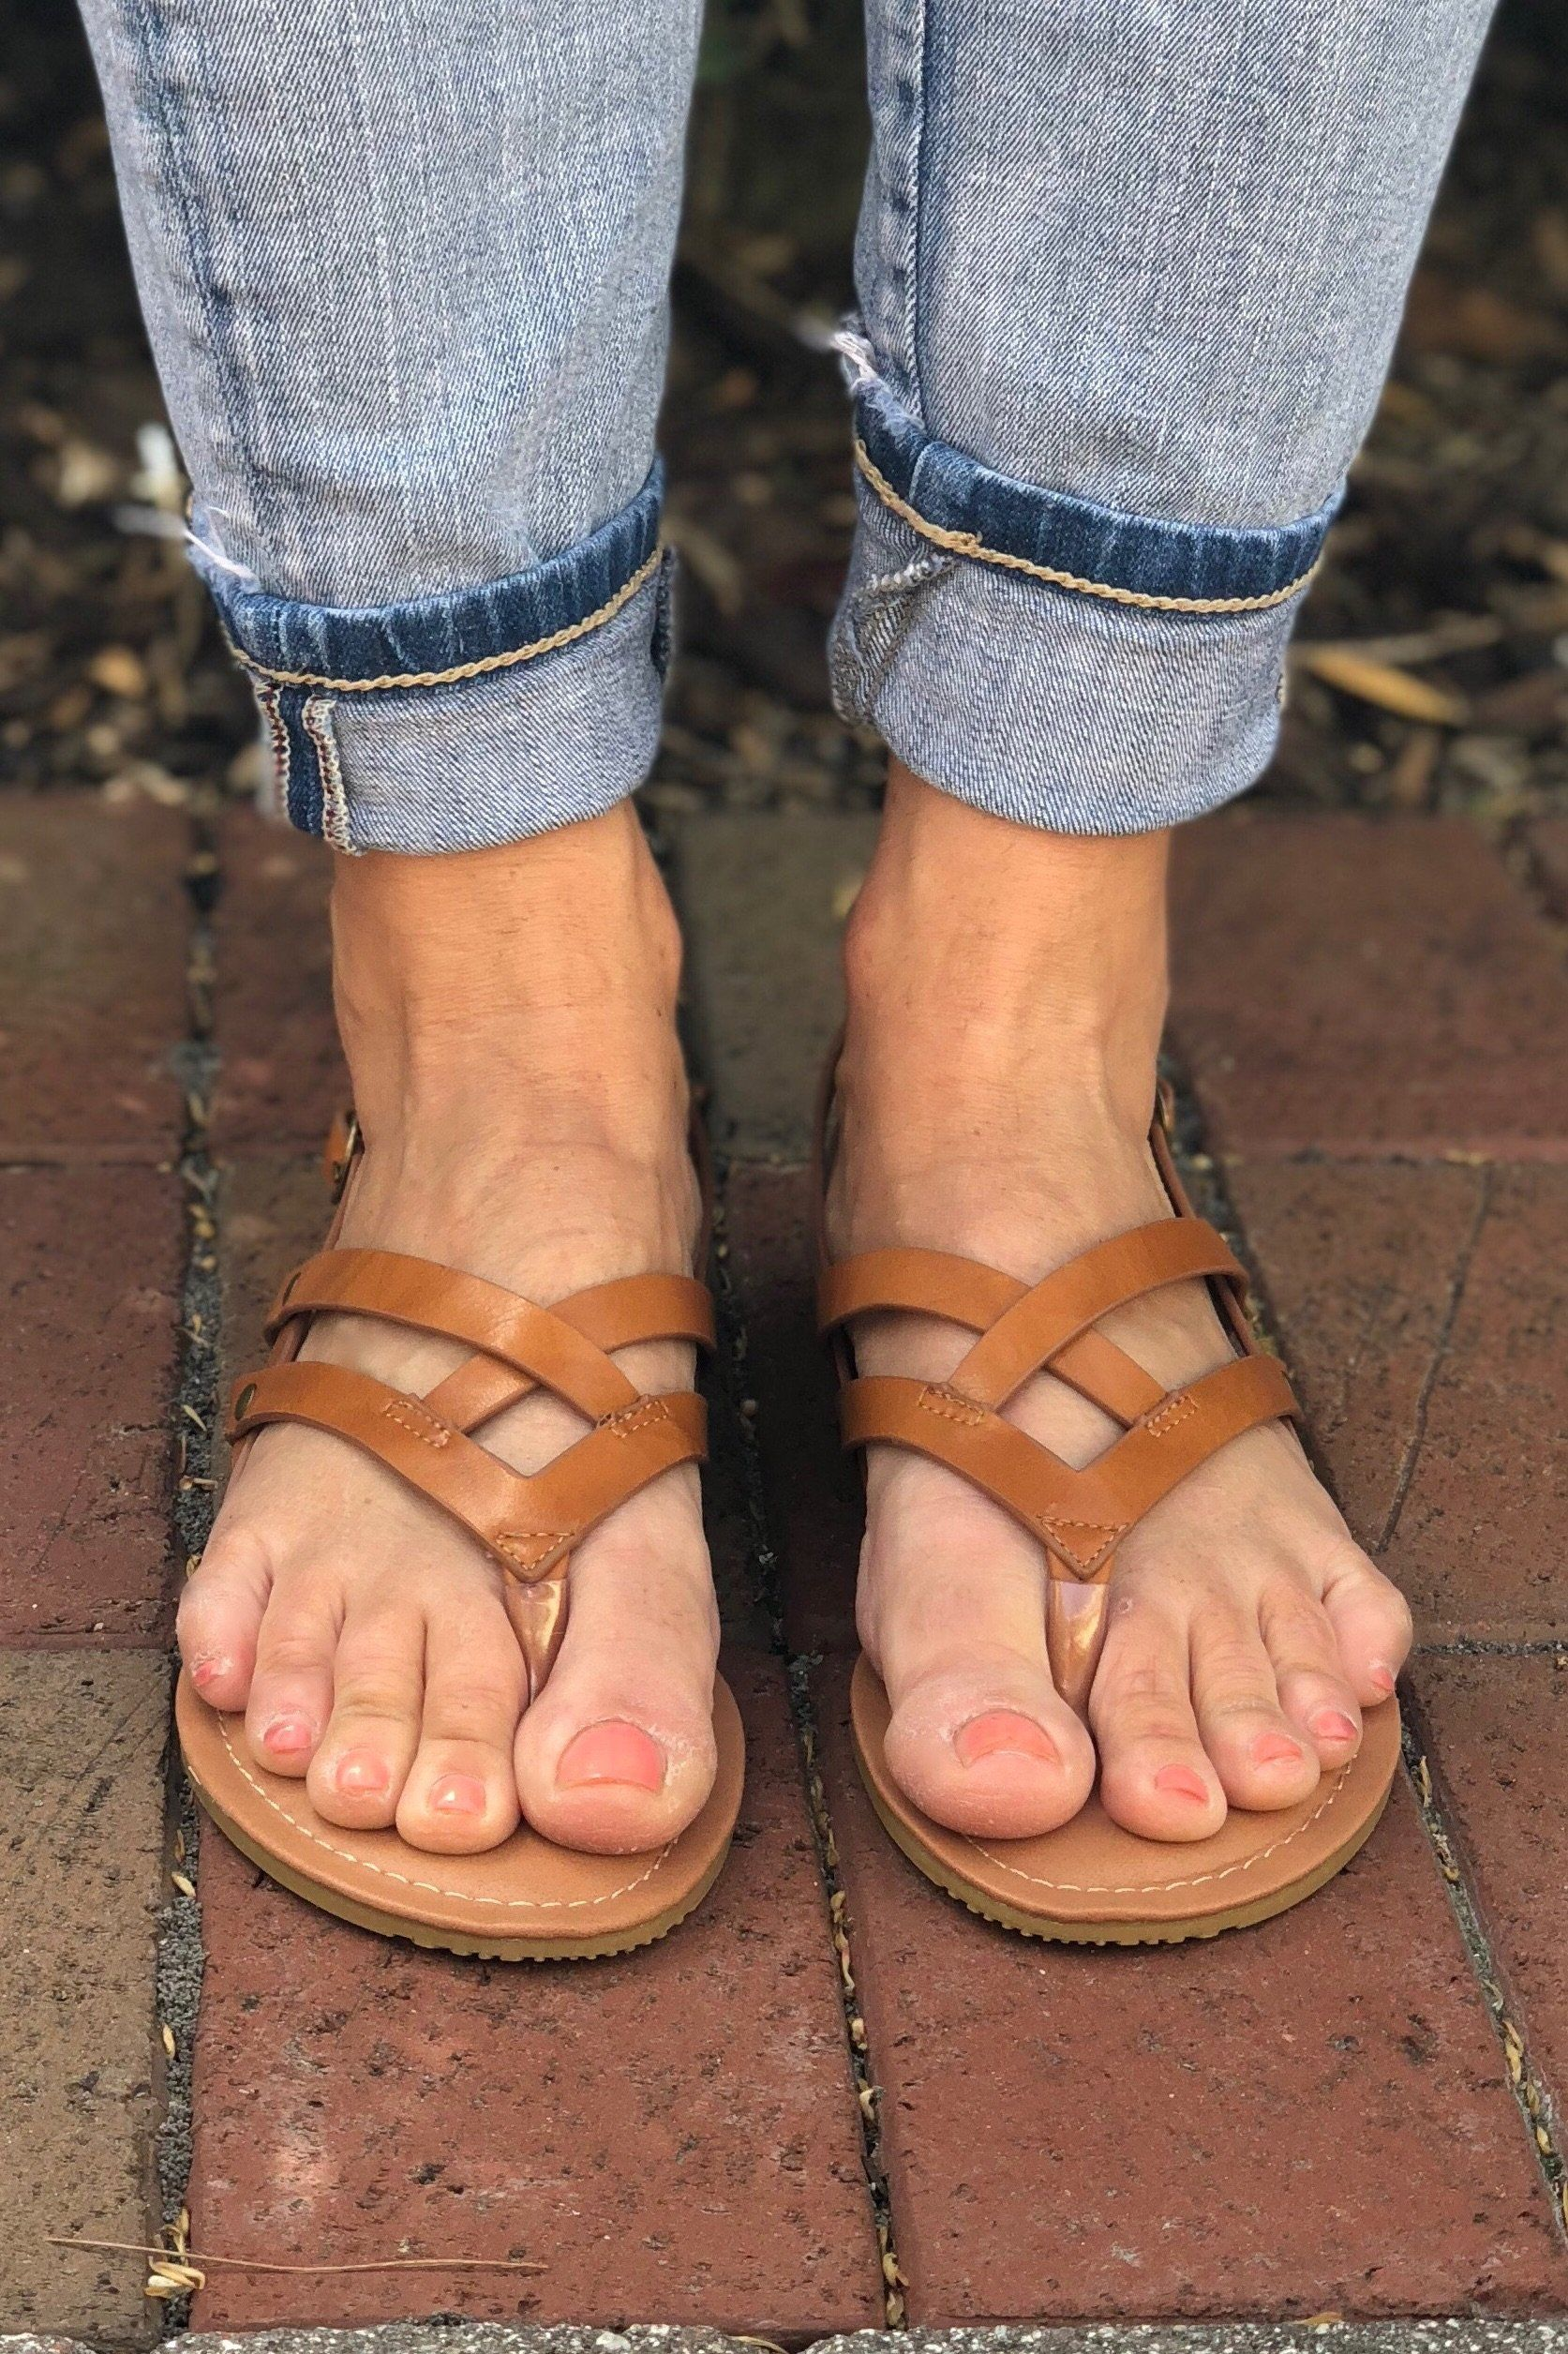 Tan sandal with double strap on the top of the foot and